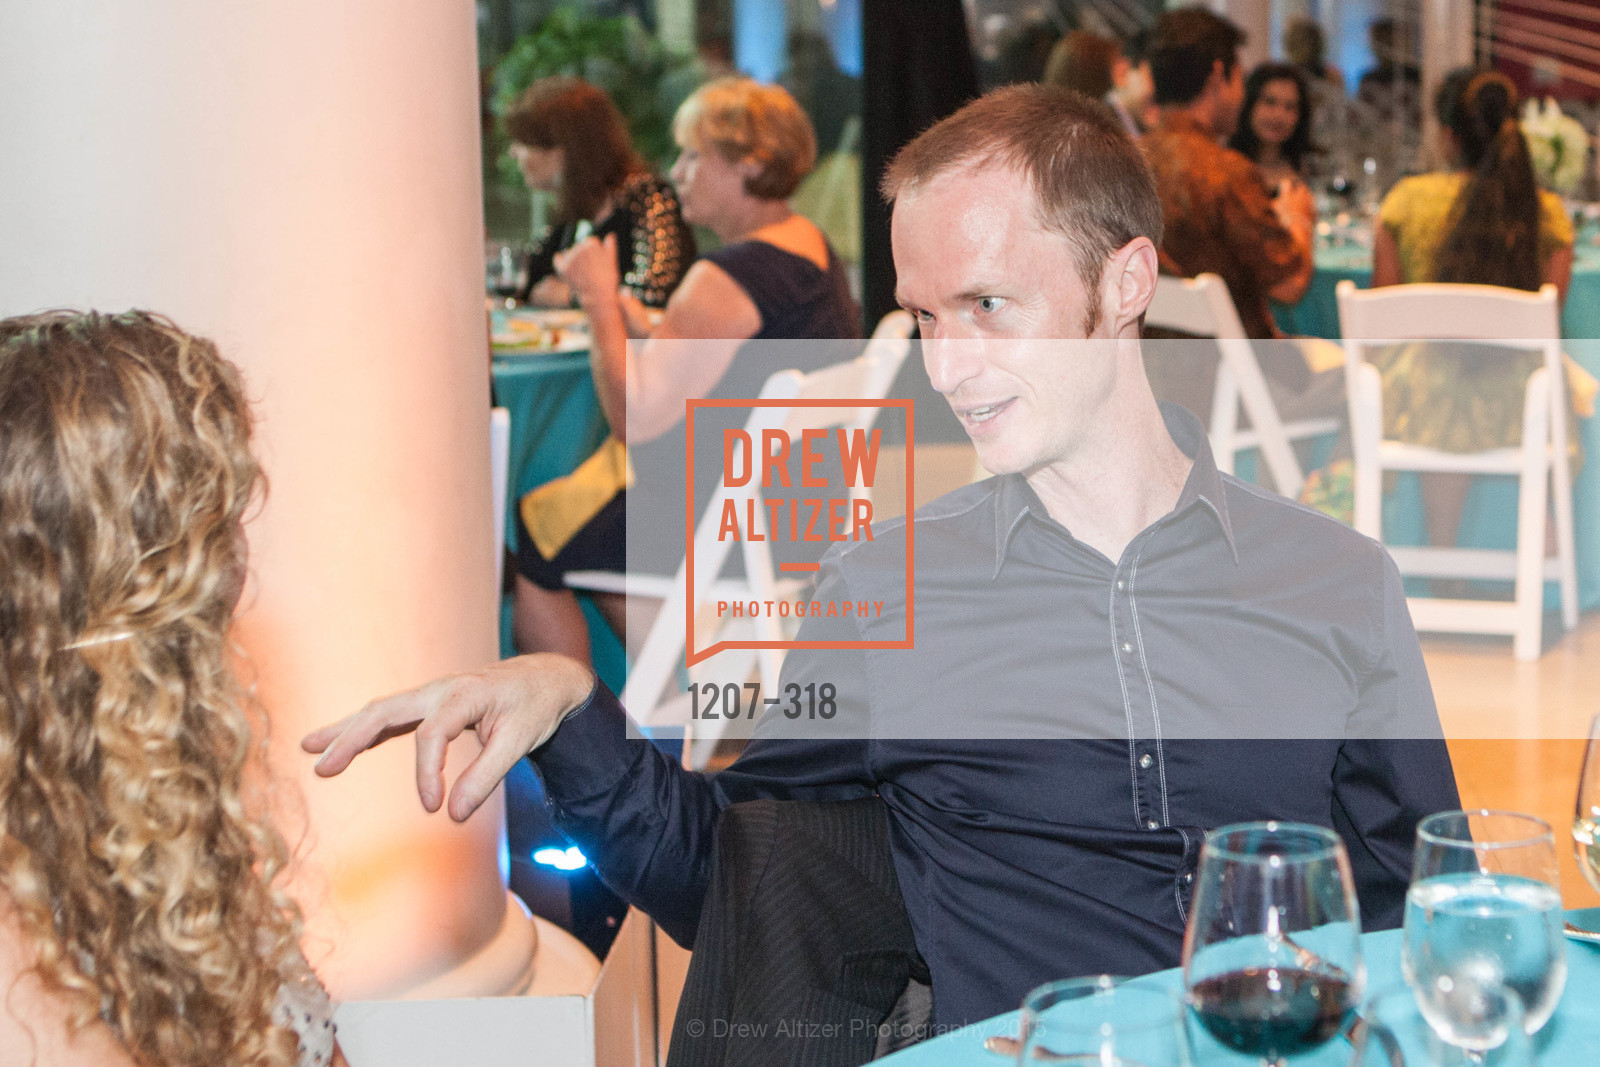 Extras, Coral Reef Alliance at the California Academy of Sciences, September 26th, 2015, Photo,Drew Altizer, Drew Altizer Photography, full-service agency, private events, San Francisco photographer, photographer california